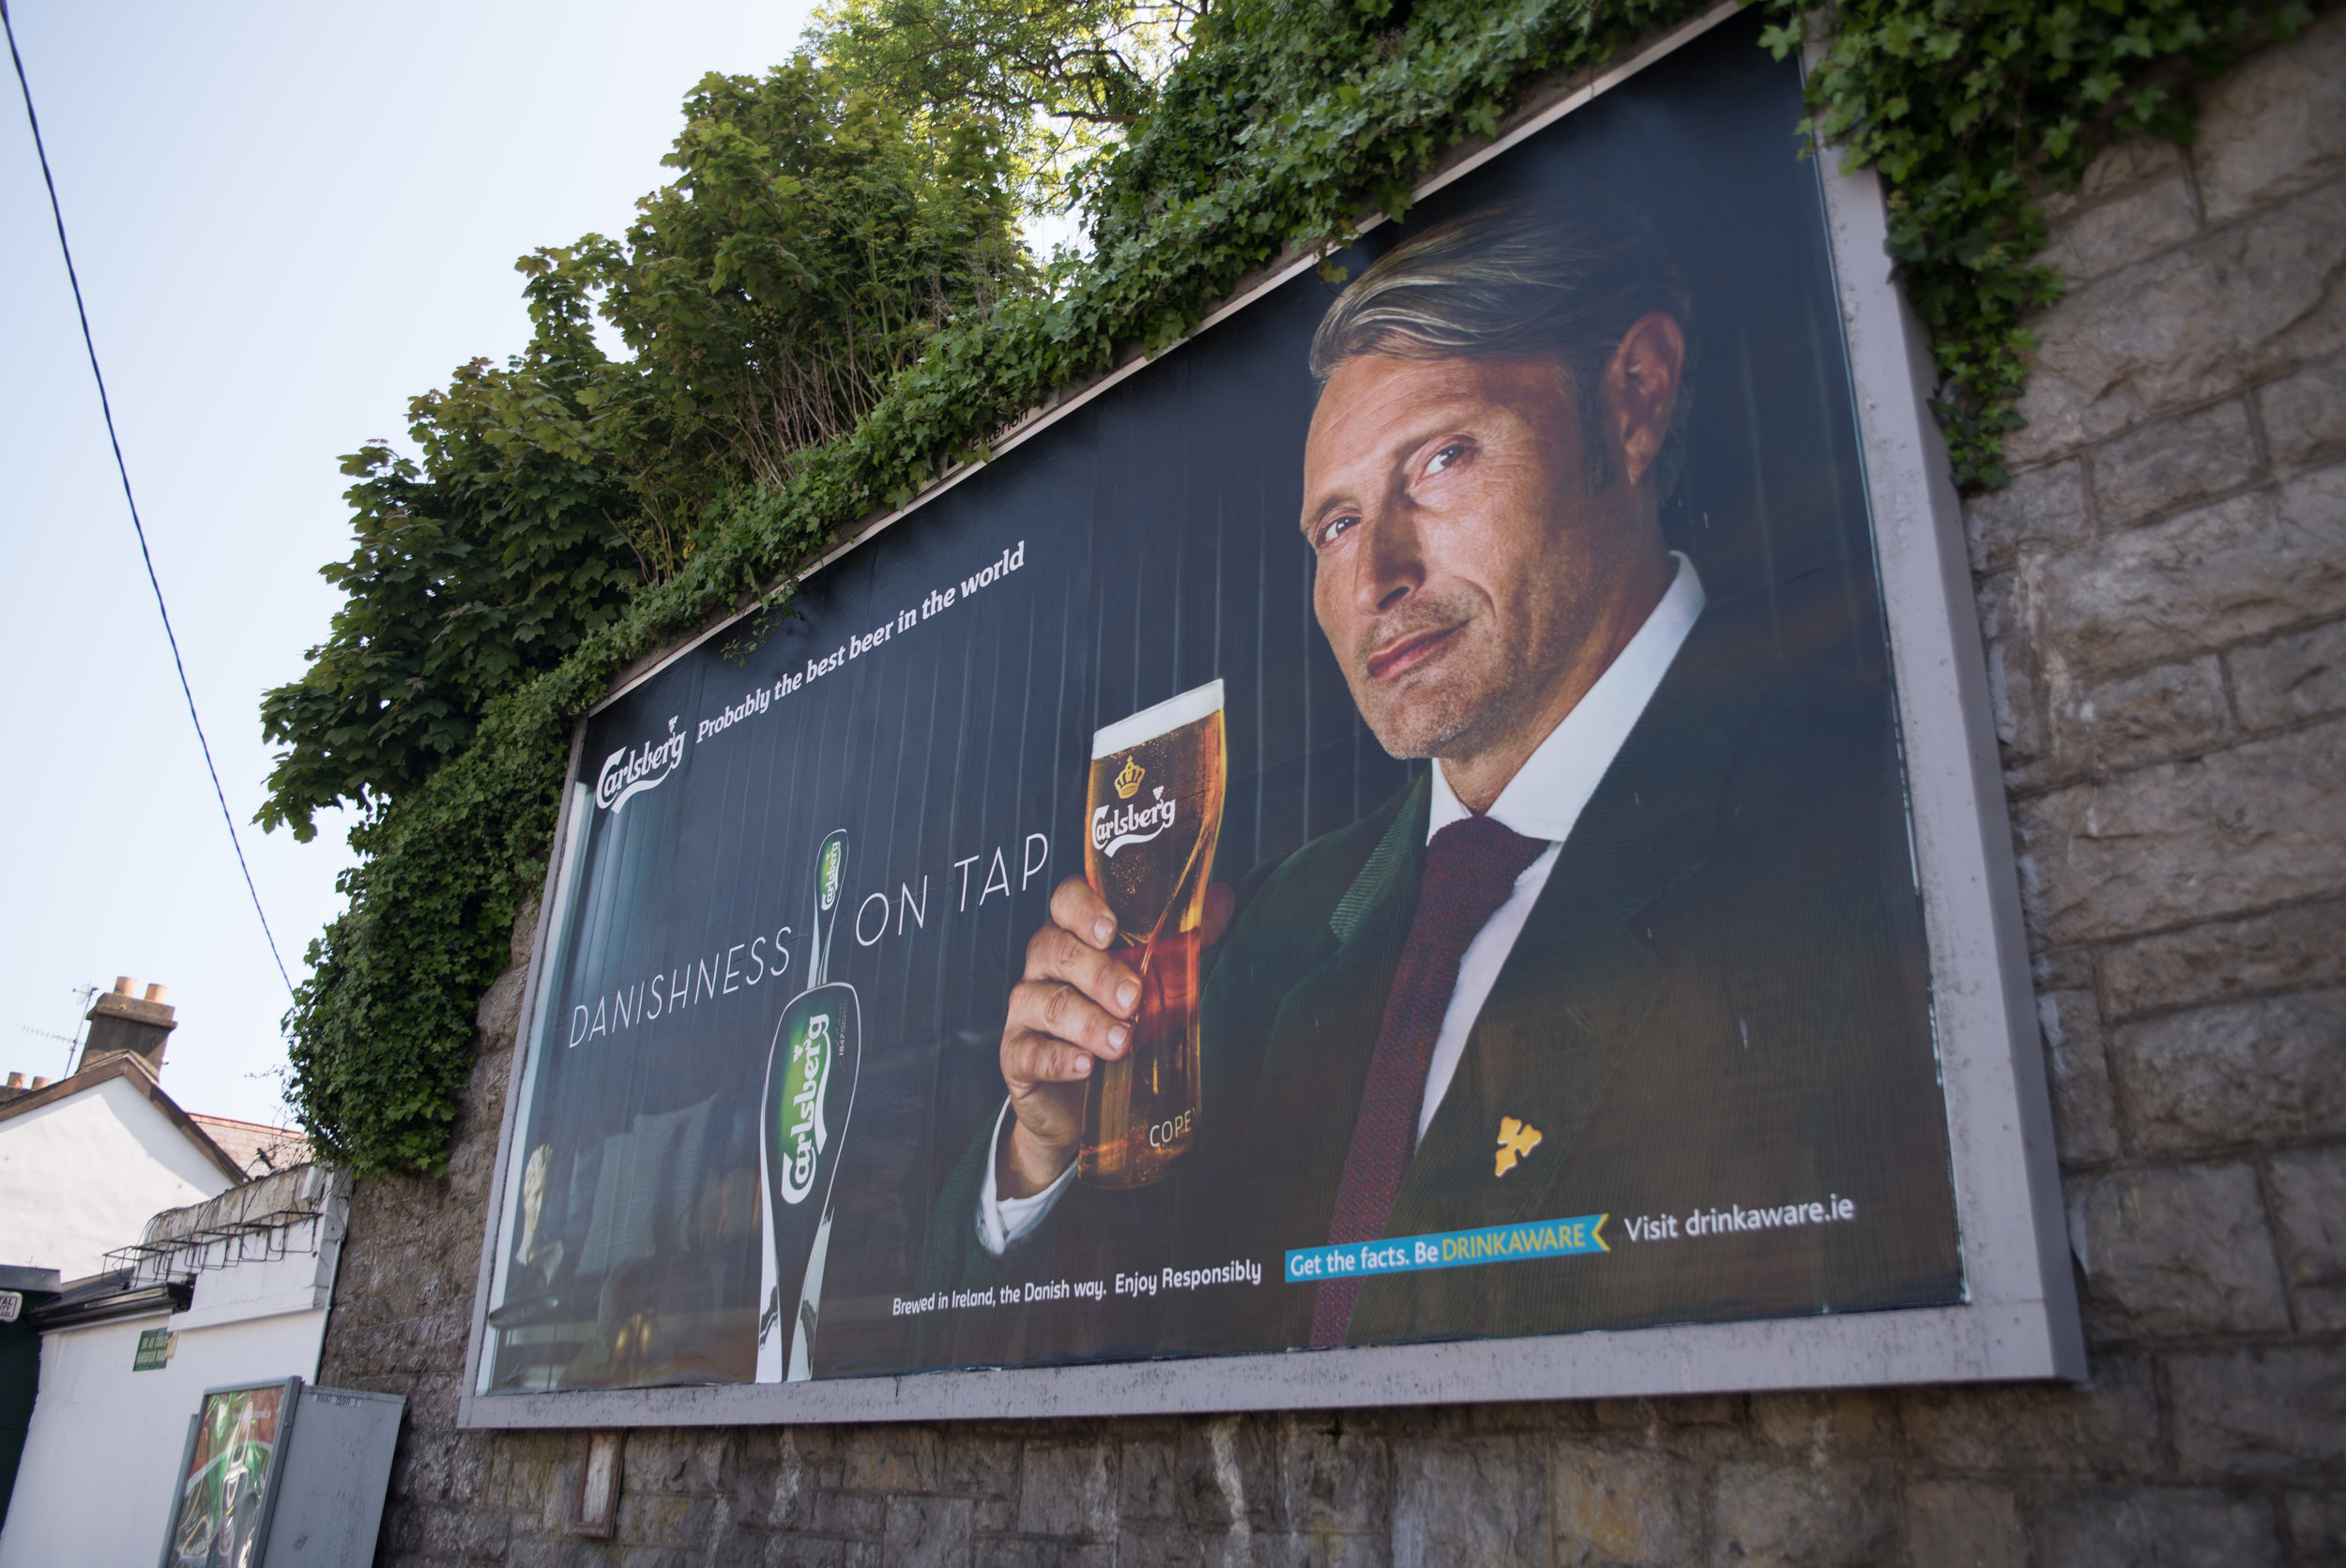 Mads Mikkelsen's face is on so many billboards for this beer (which by the way is very good).